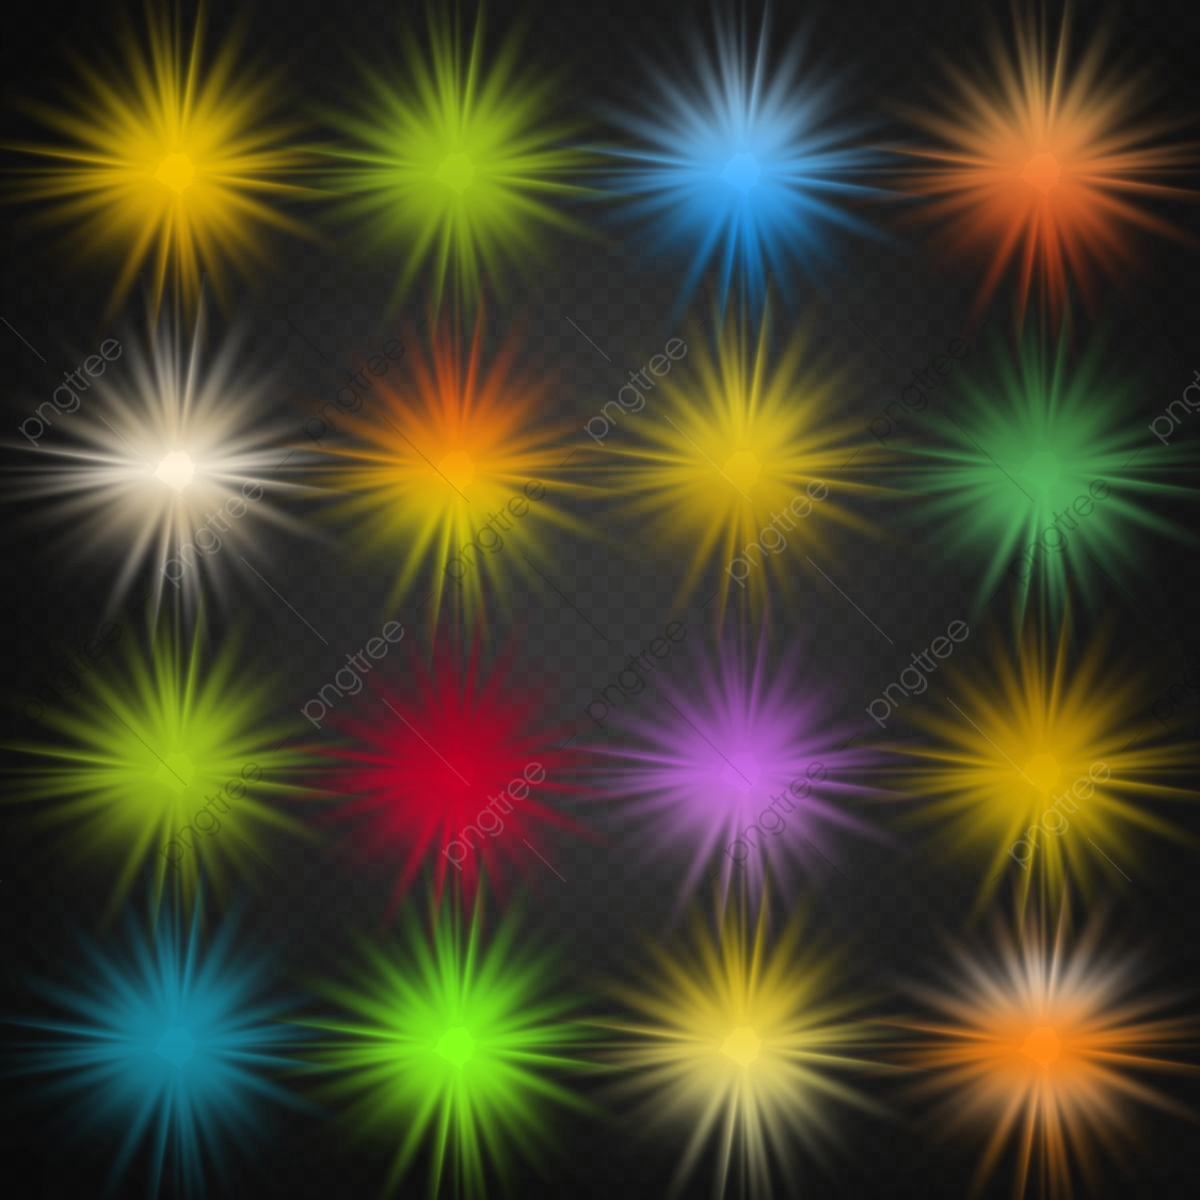 Multicolor Light Effects Packs With Glow Effects, Dots